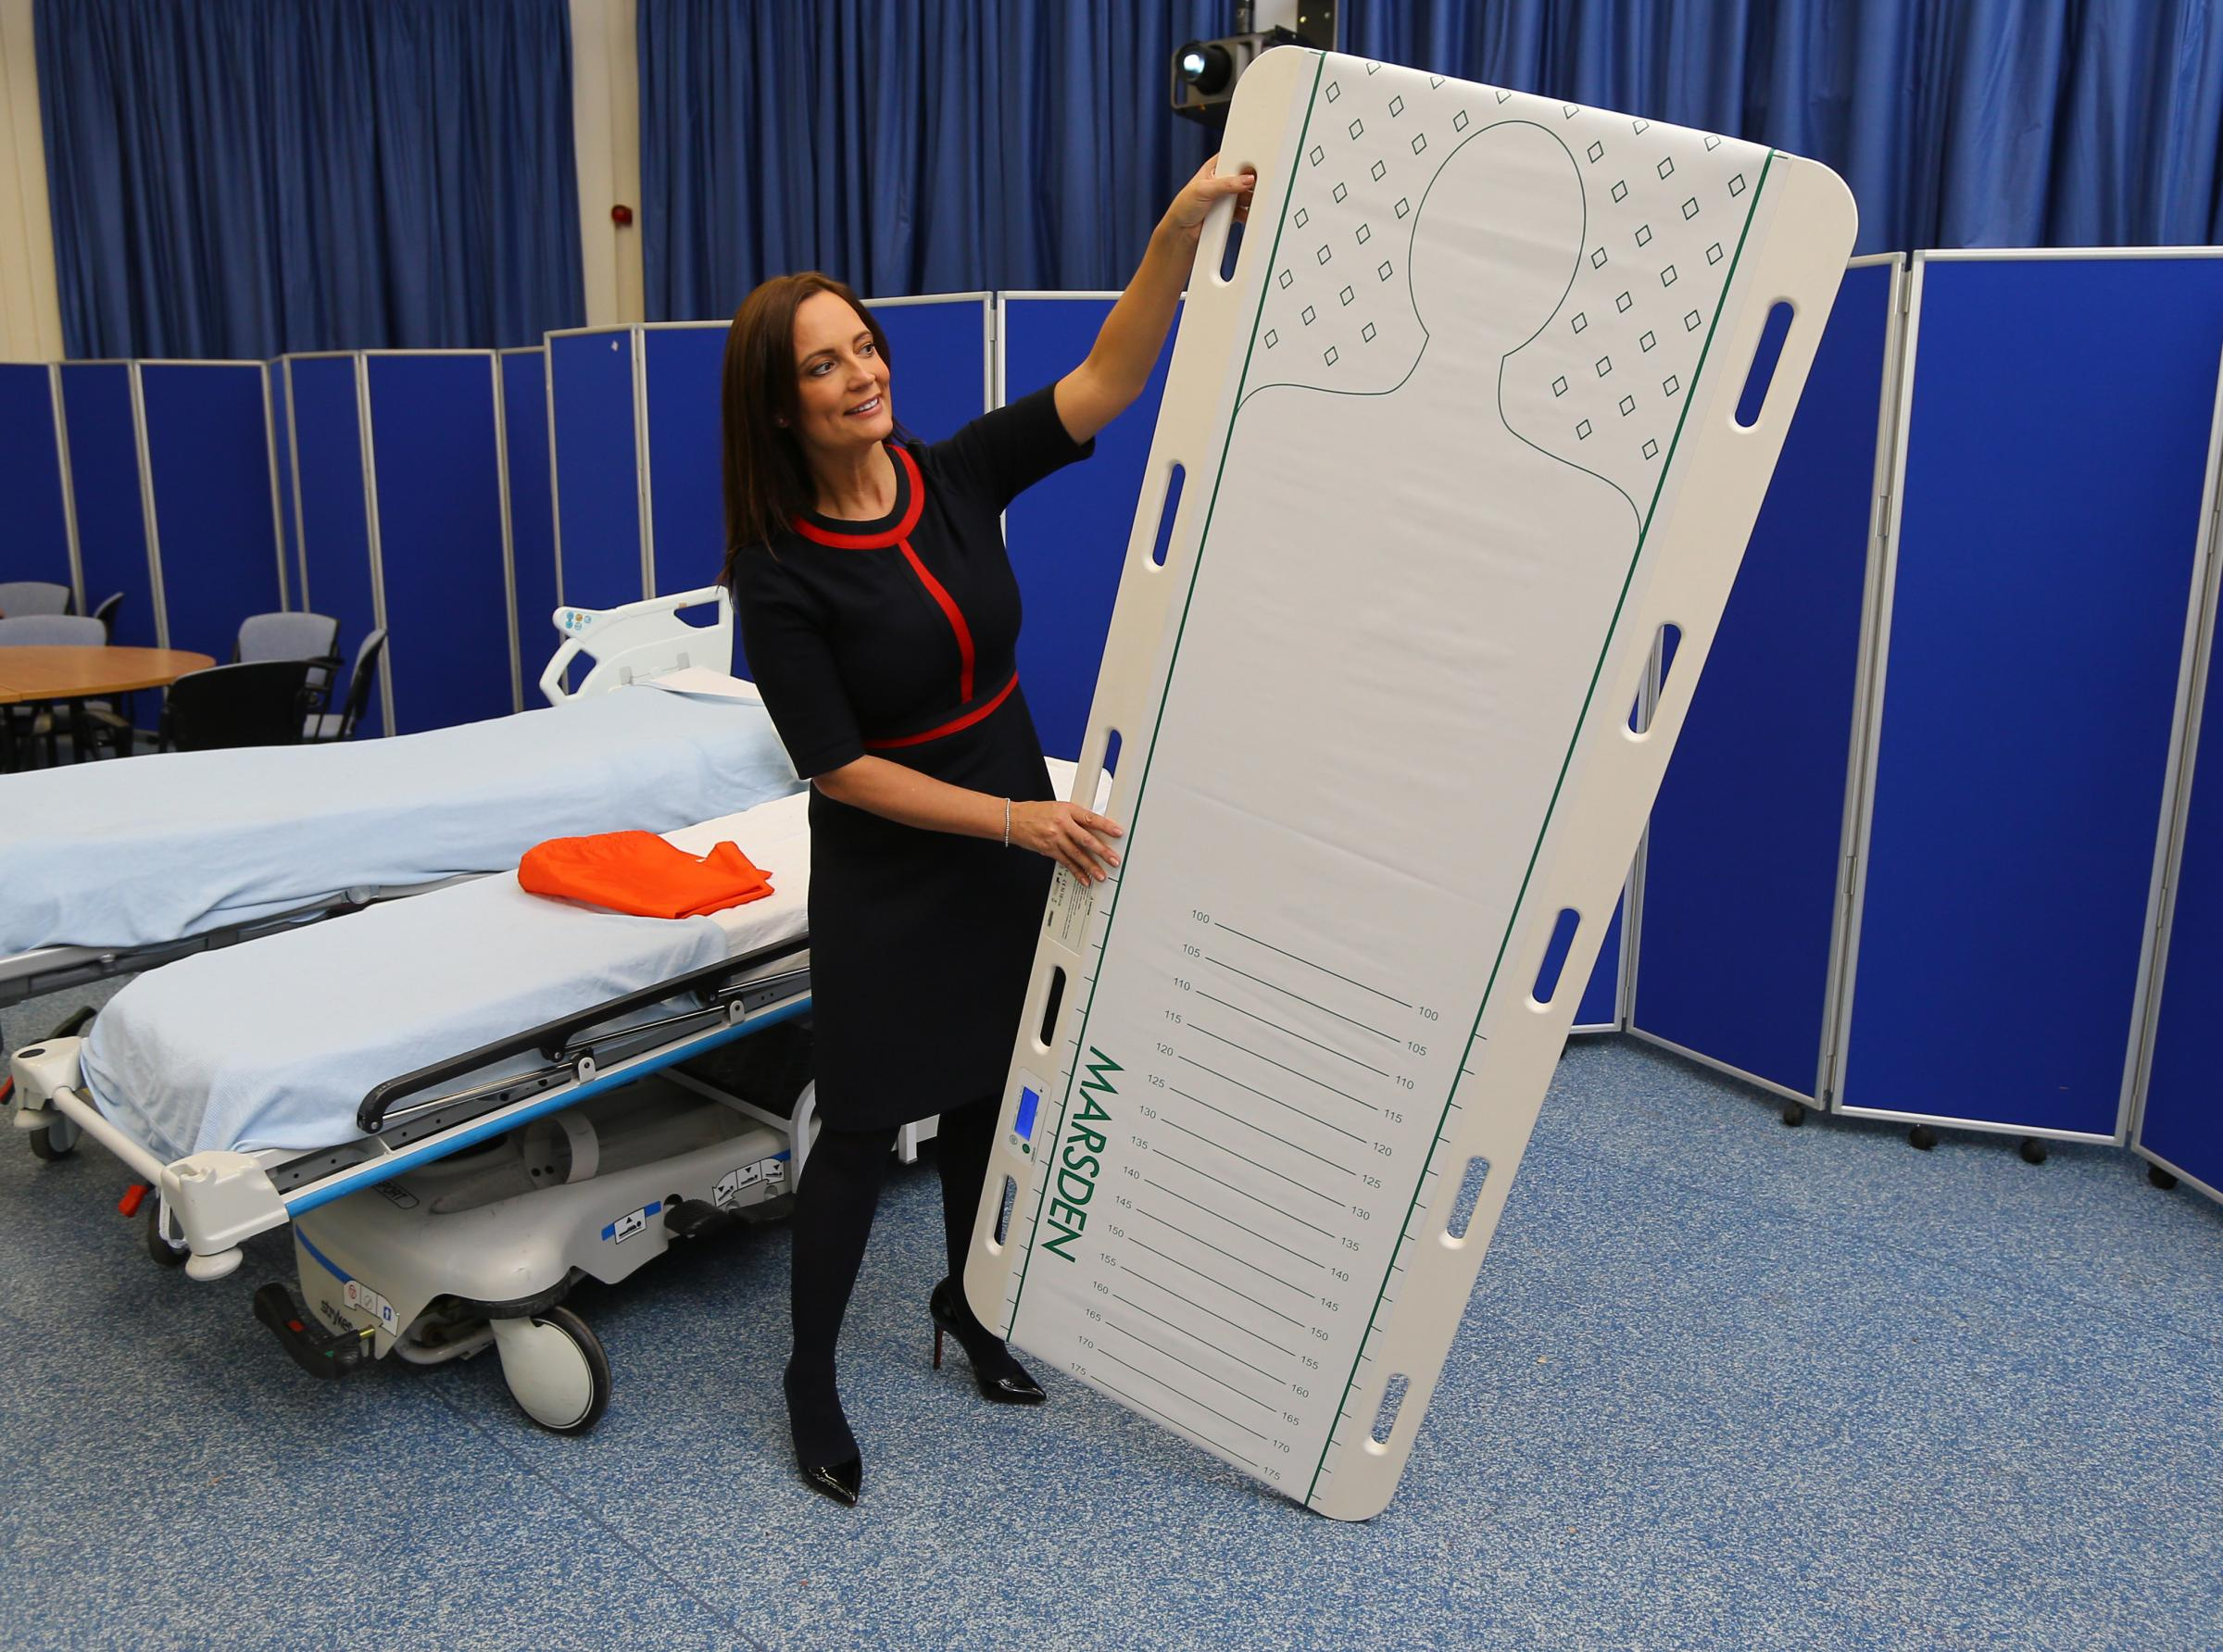 Scales invented by Lanarkshire nurse could be life-saving for seriously ill emergency patients